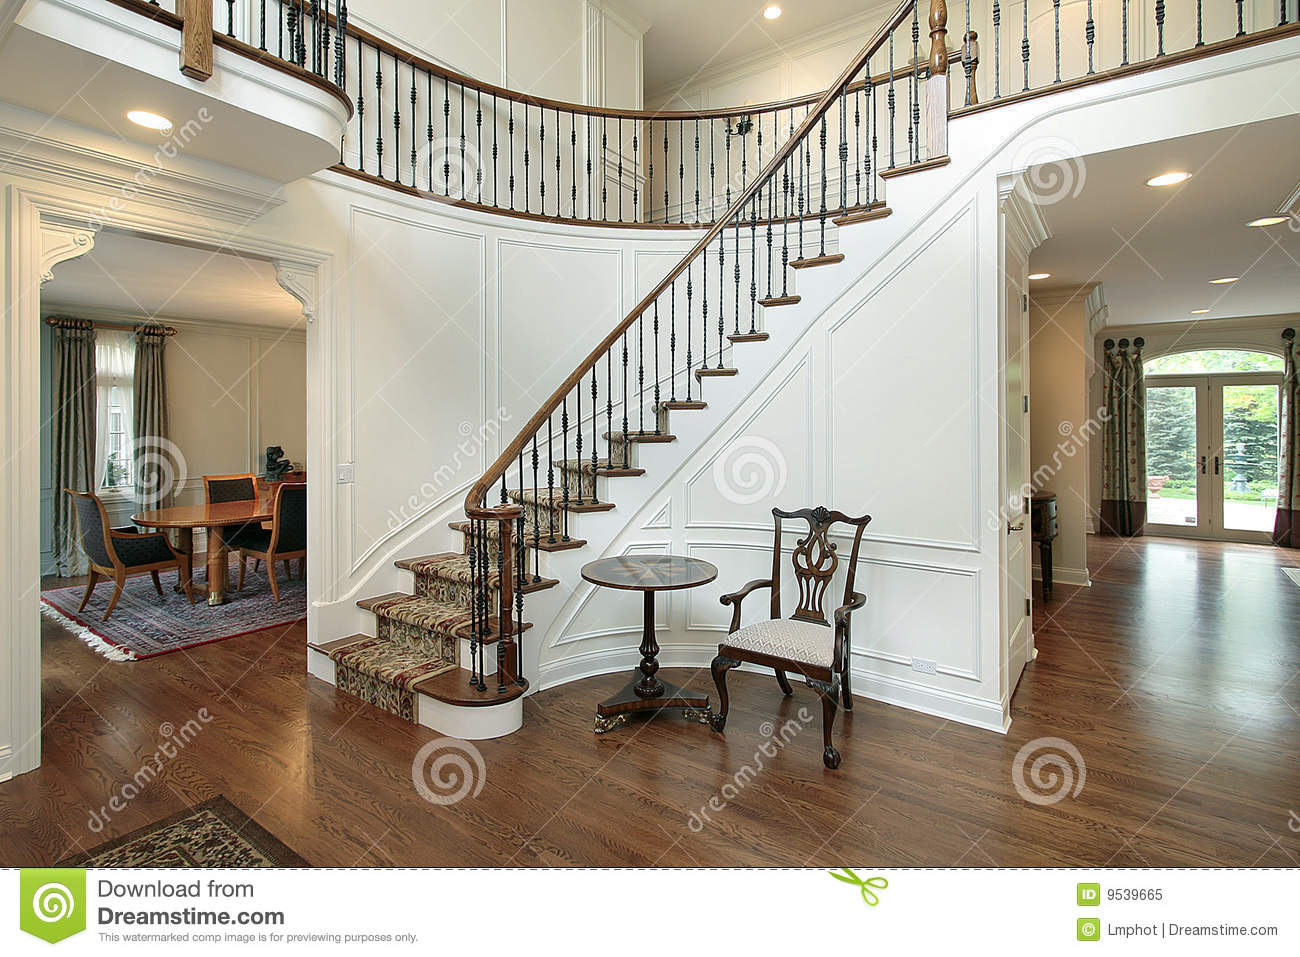 Foyer Clipart : Foyer with curved staircase stock photography